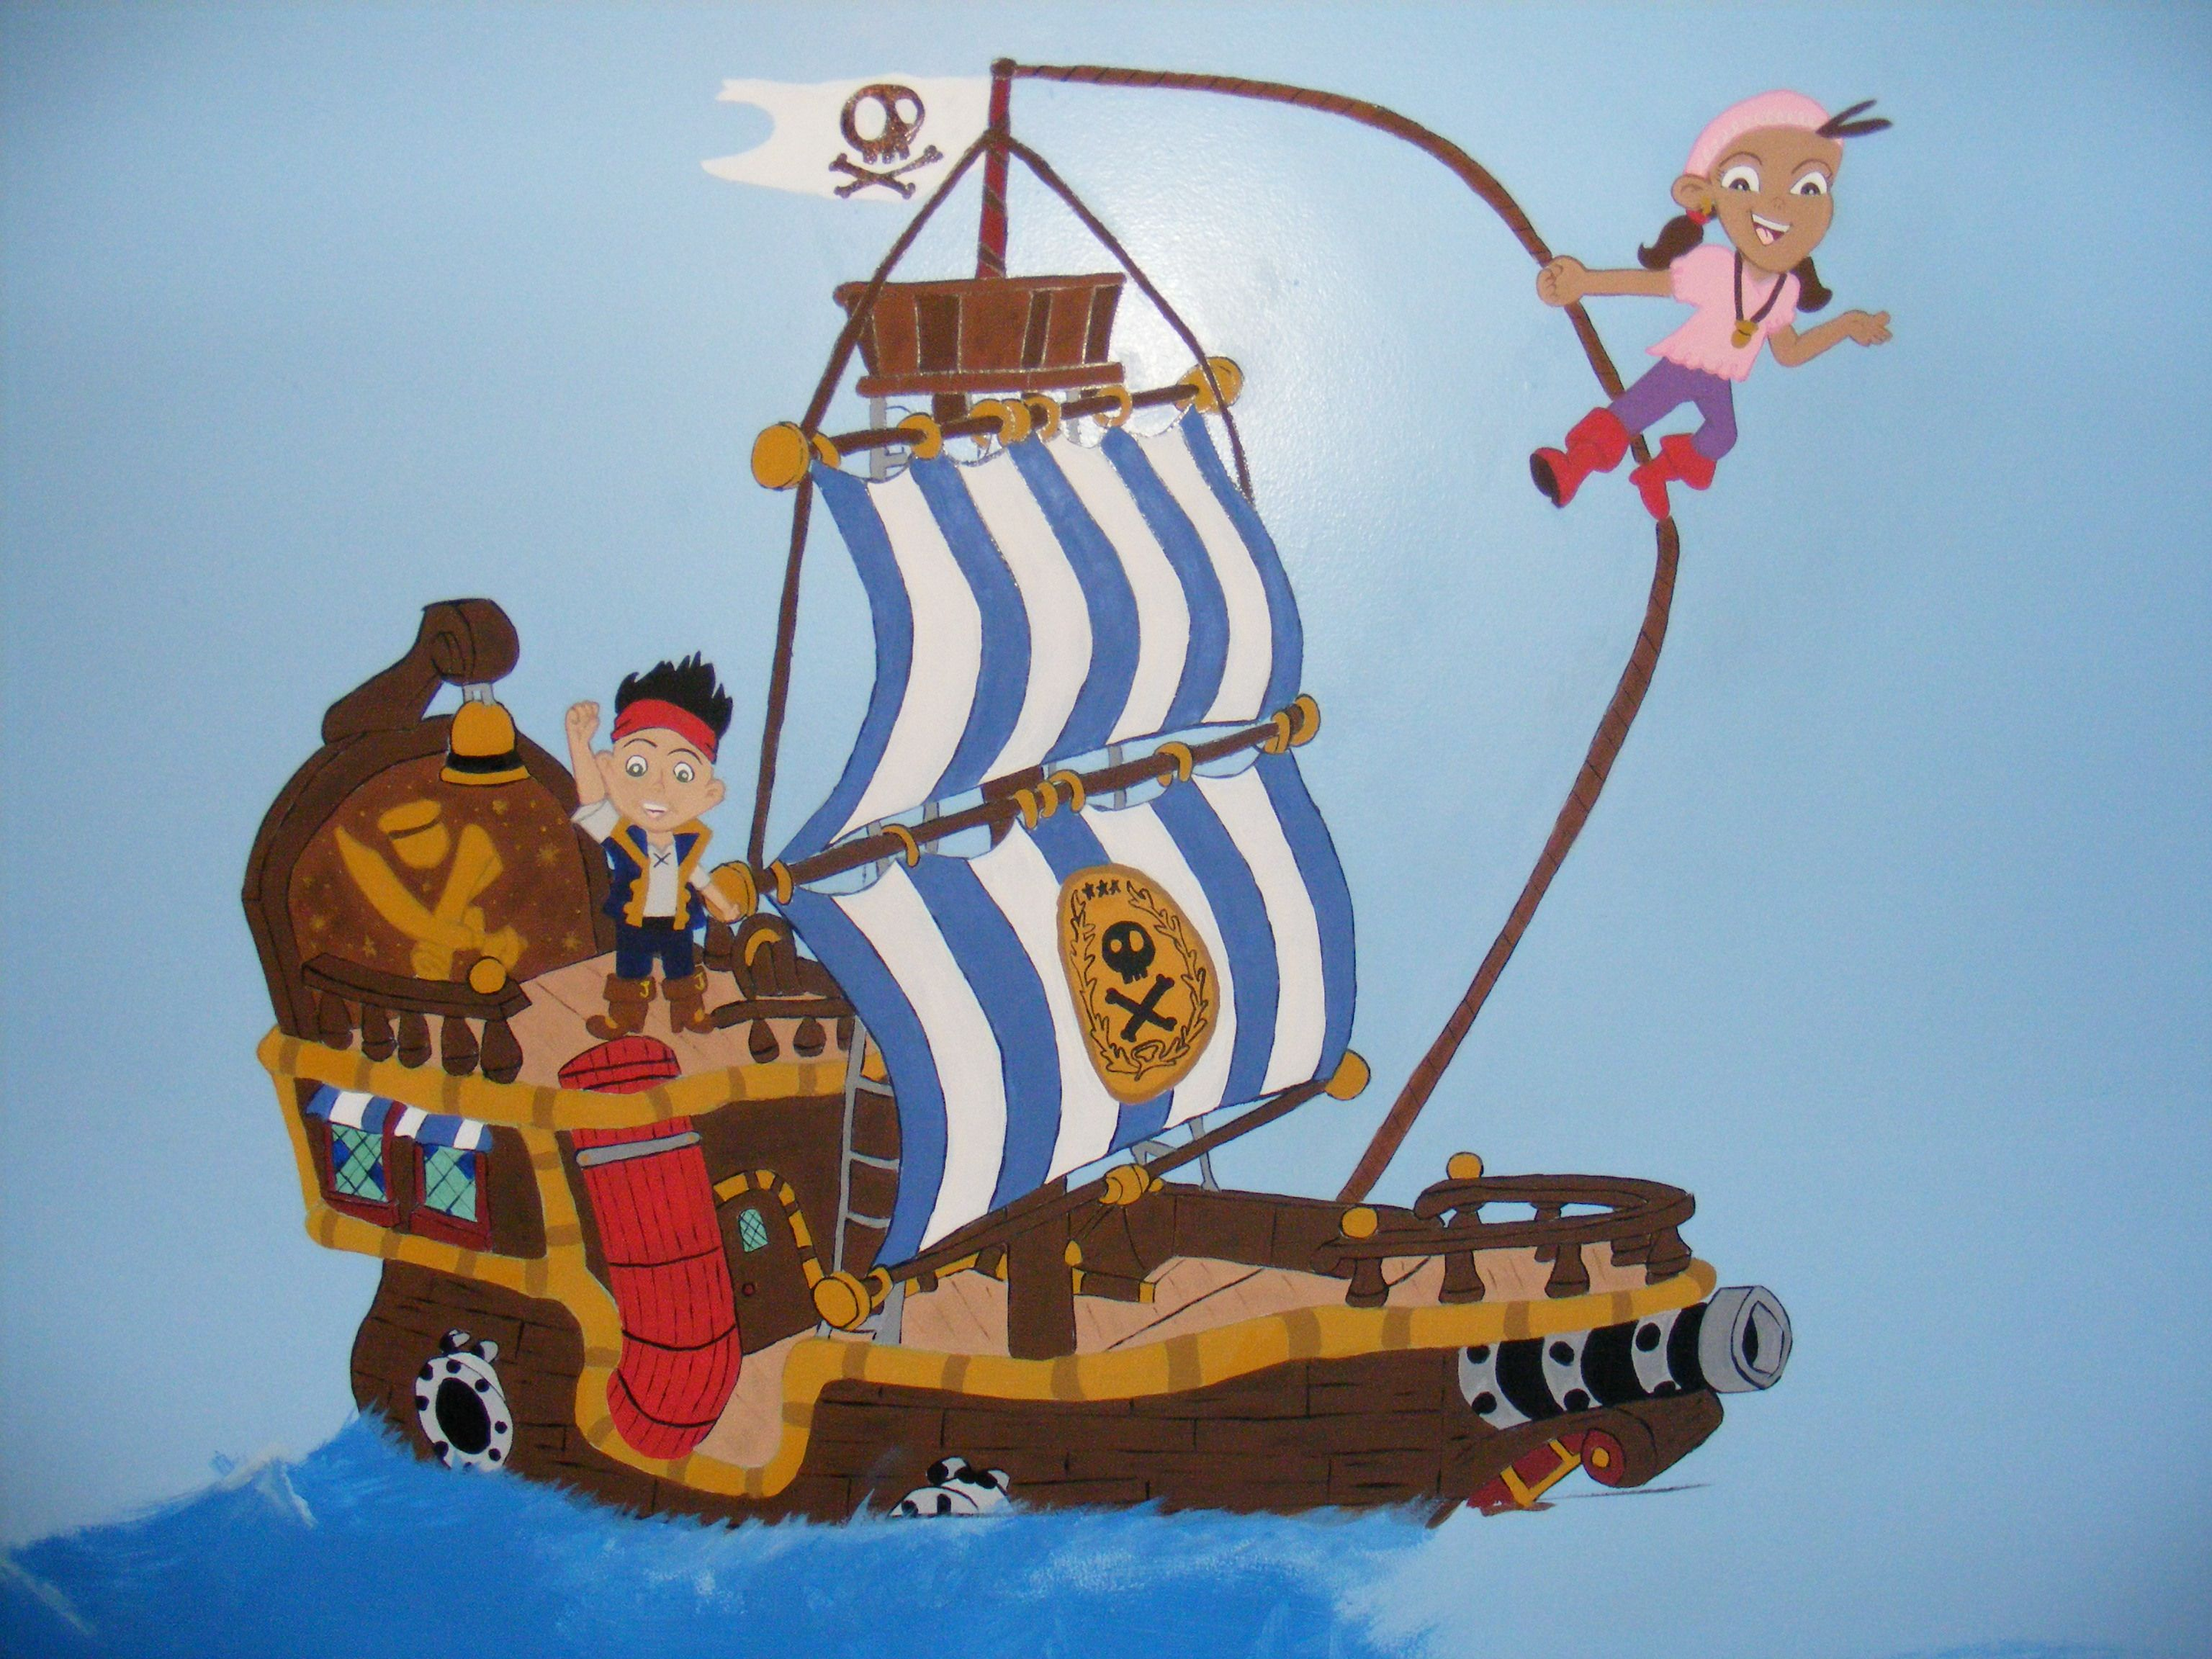 Pirate Bedroom Accessories Jake The Neverland Pirates Ship With Jake On Deck And Izzy On